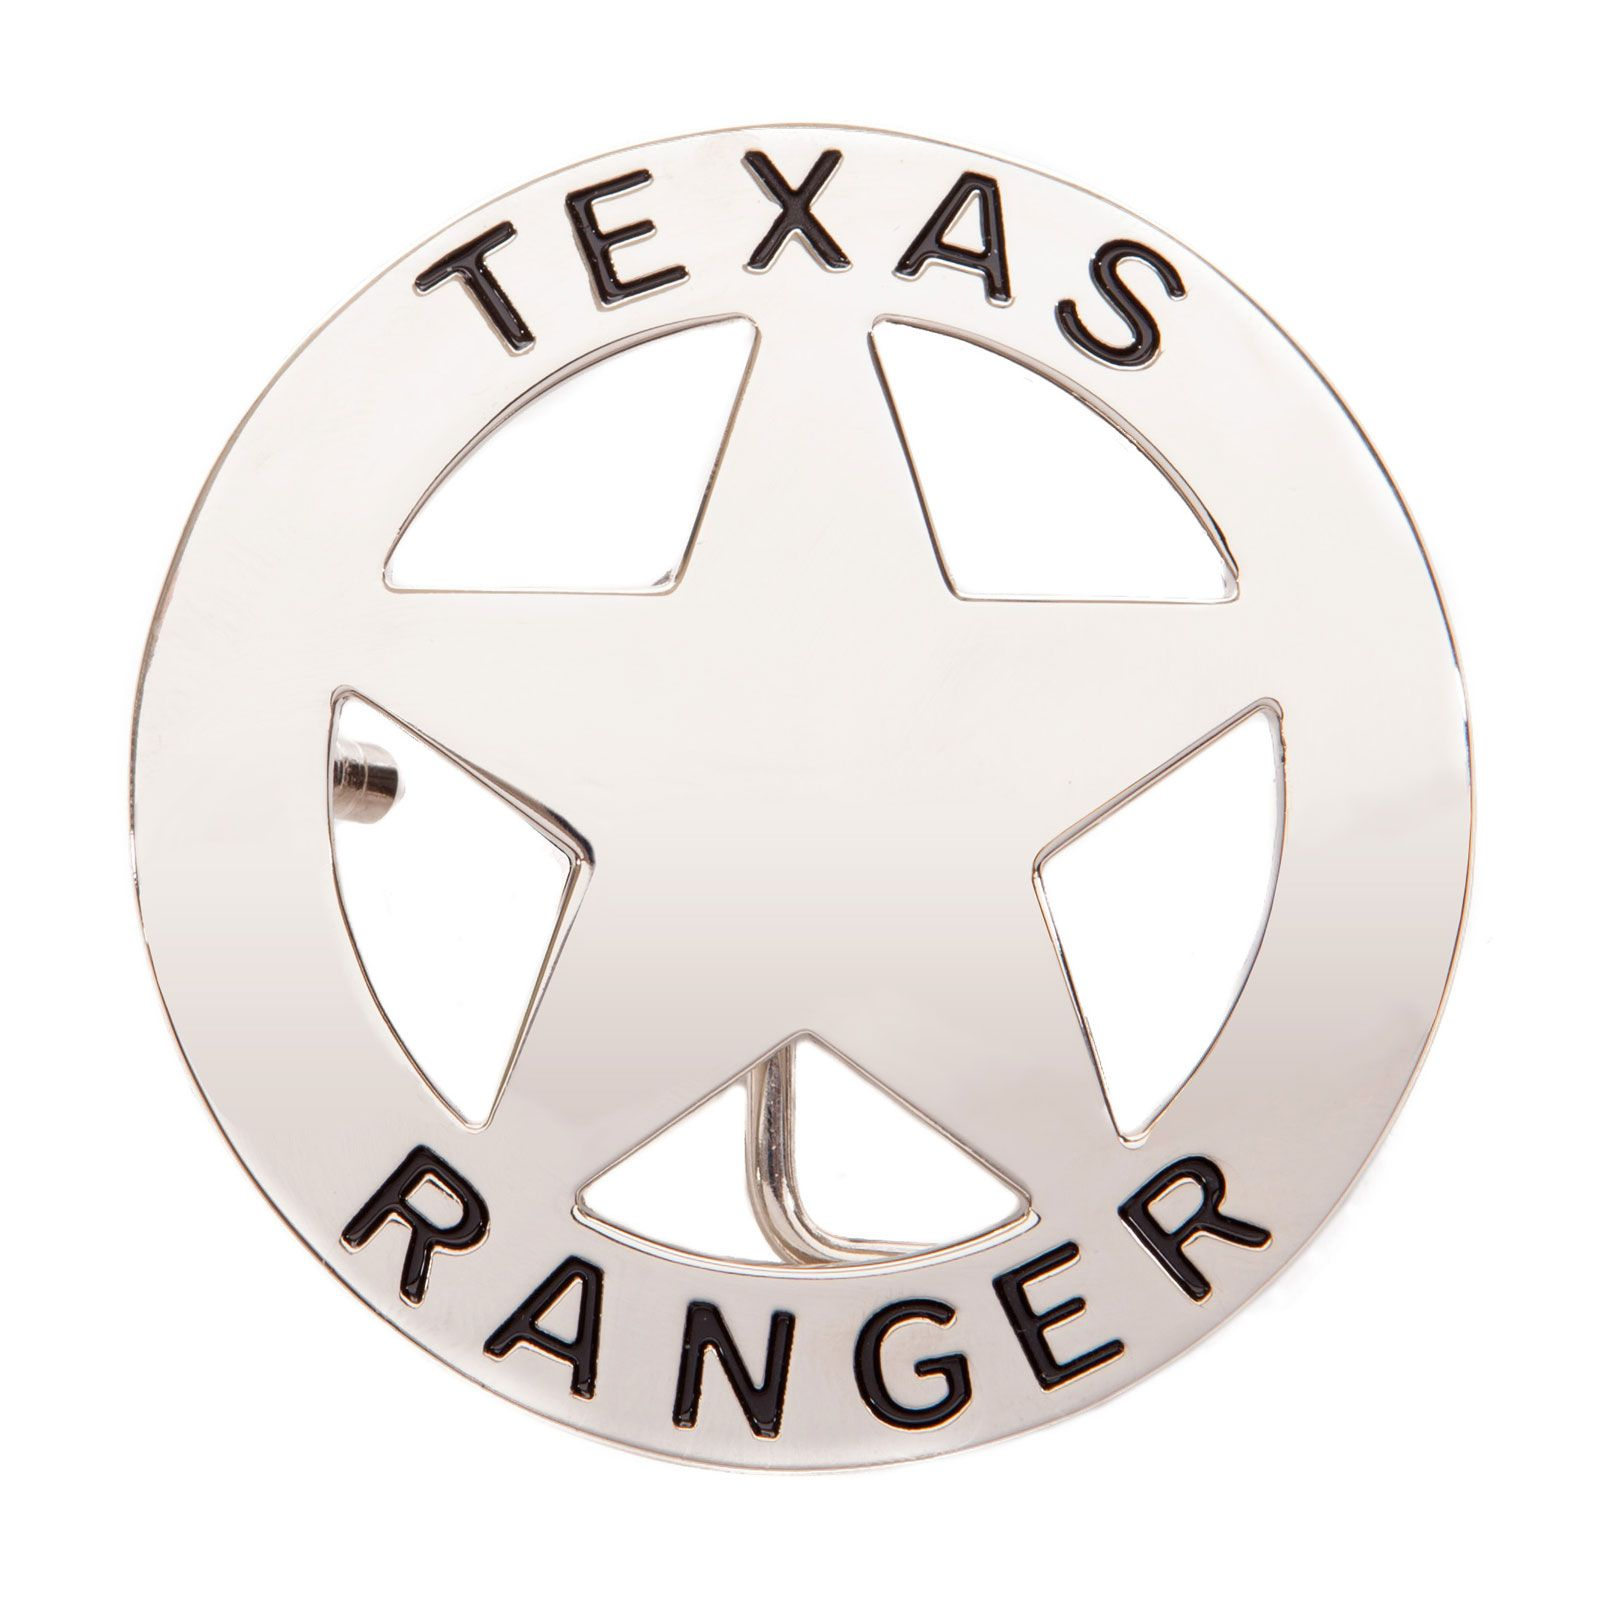 Texas Ranger Silver Tone Belt Buckle